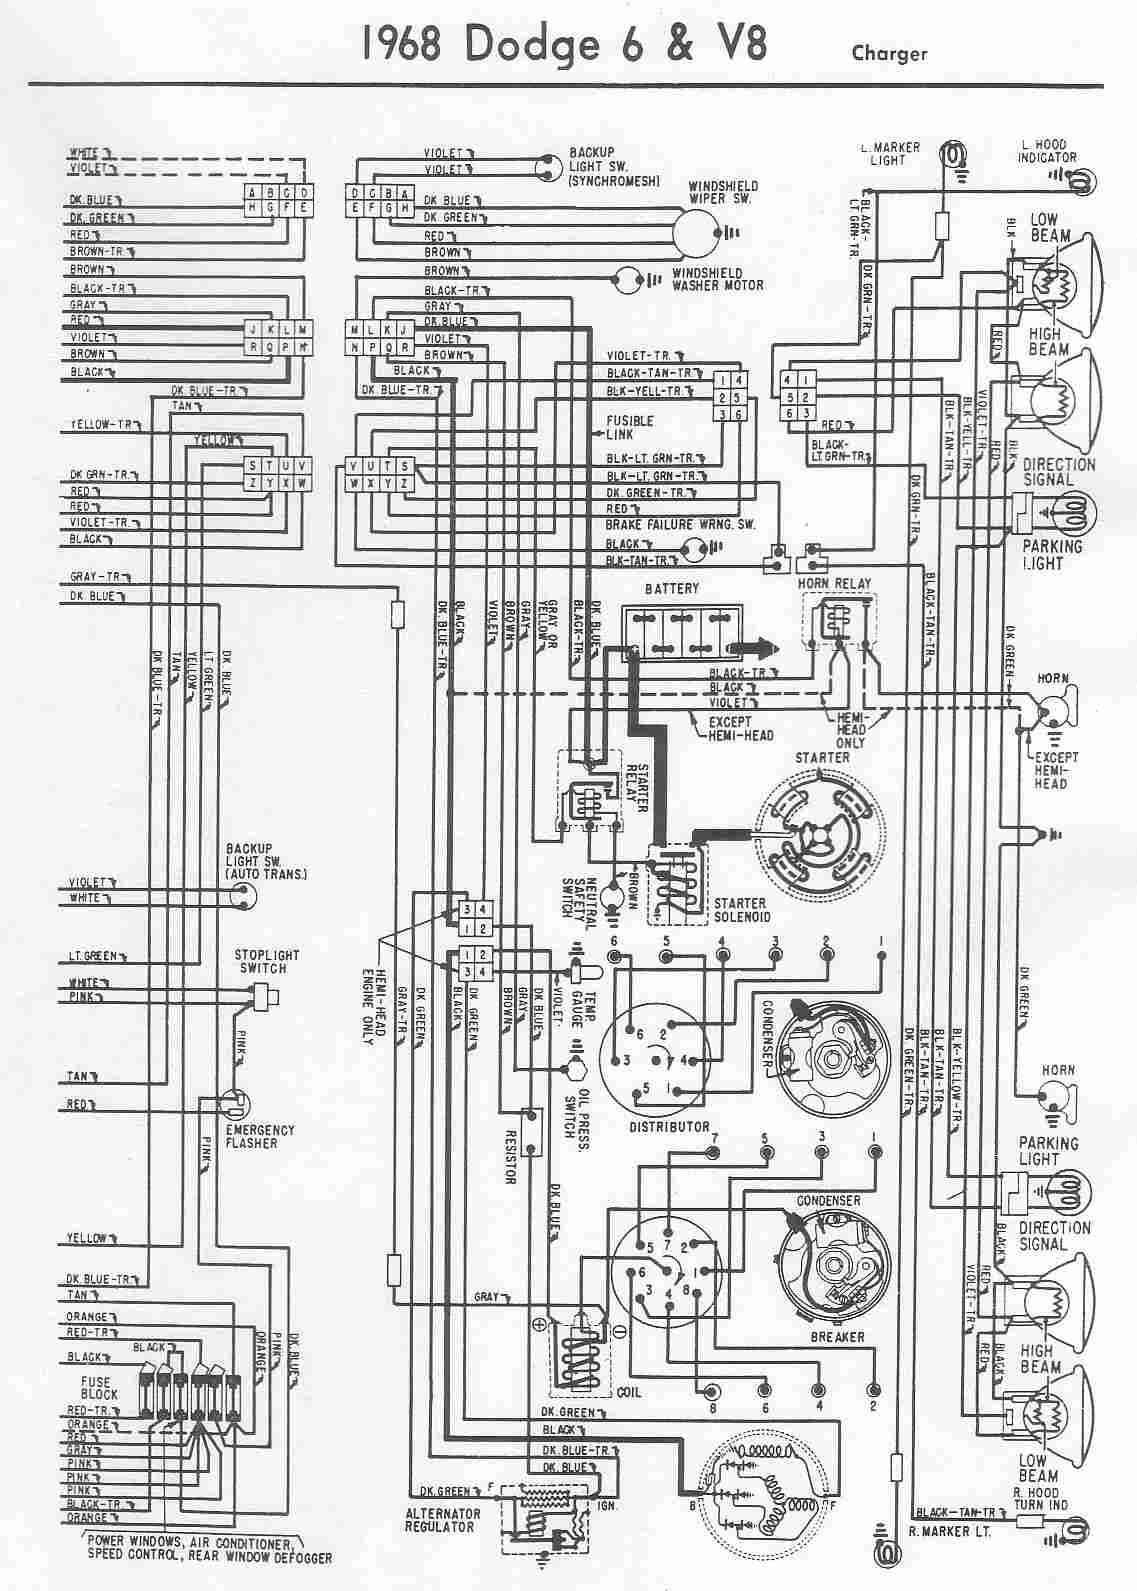 2009 Dodge 3500 Wiring Diagram Library 1990 Spirit Download Car Manuals Diagrams